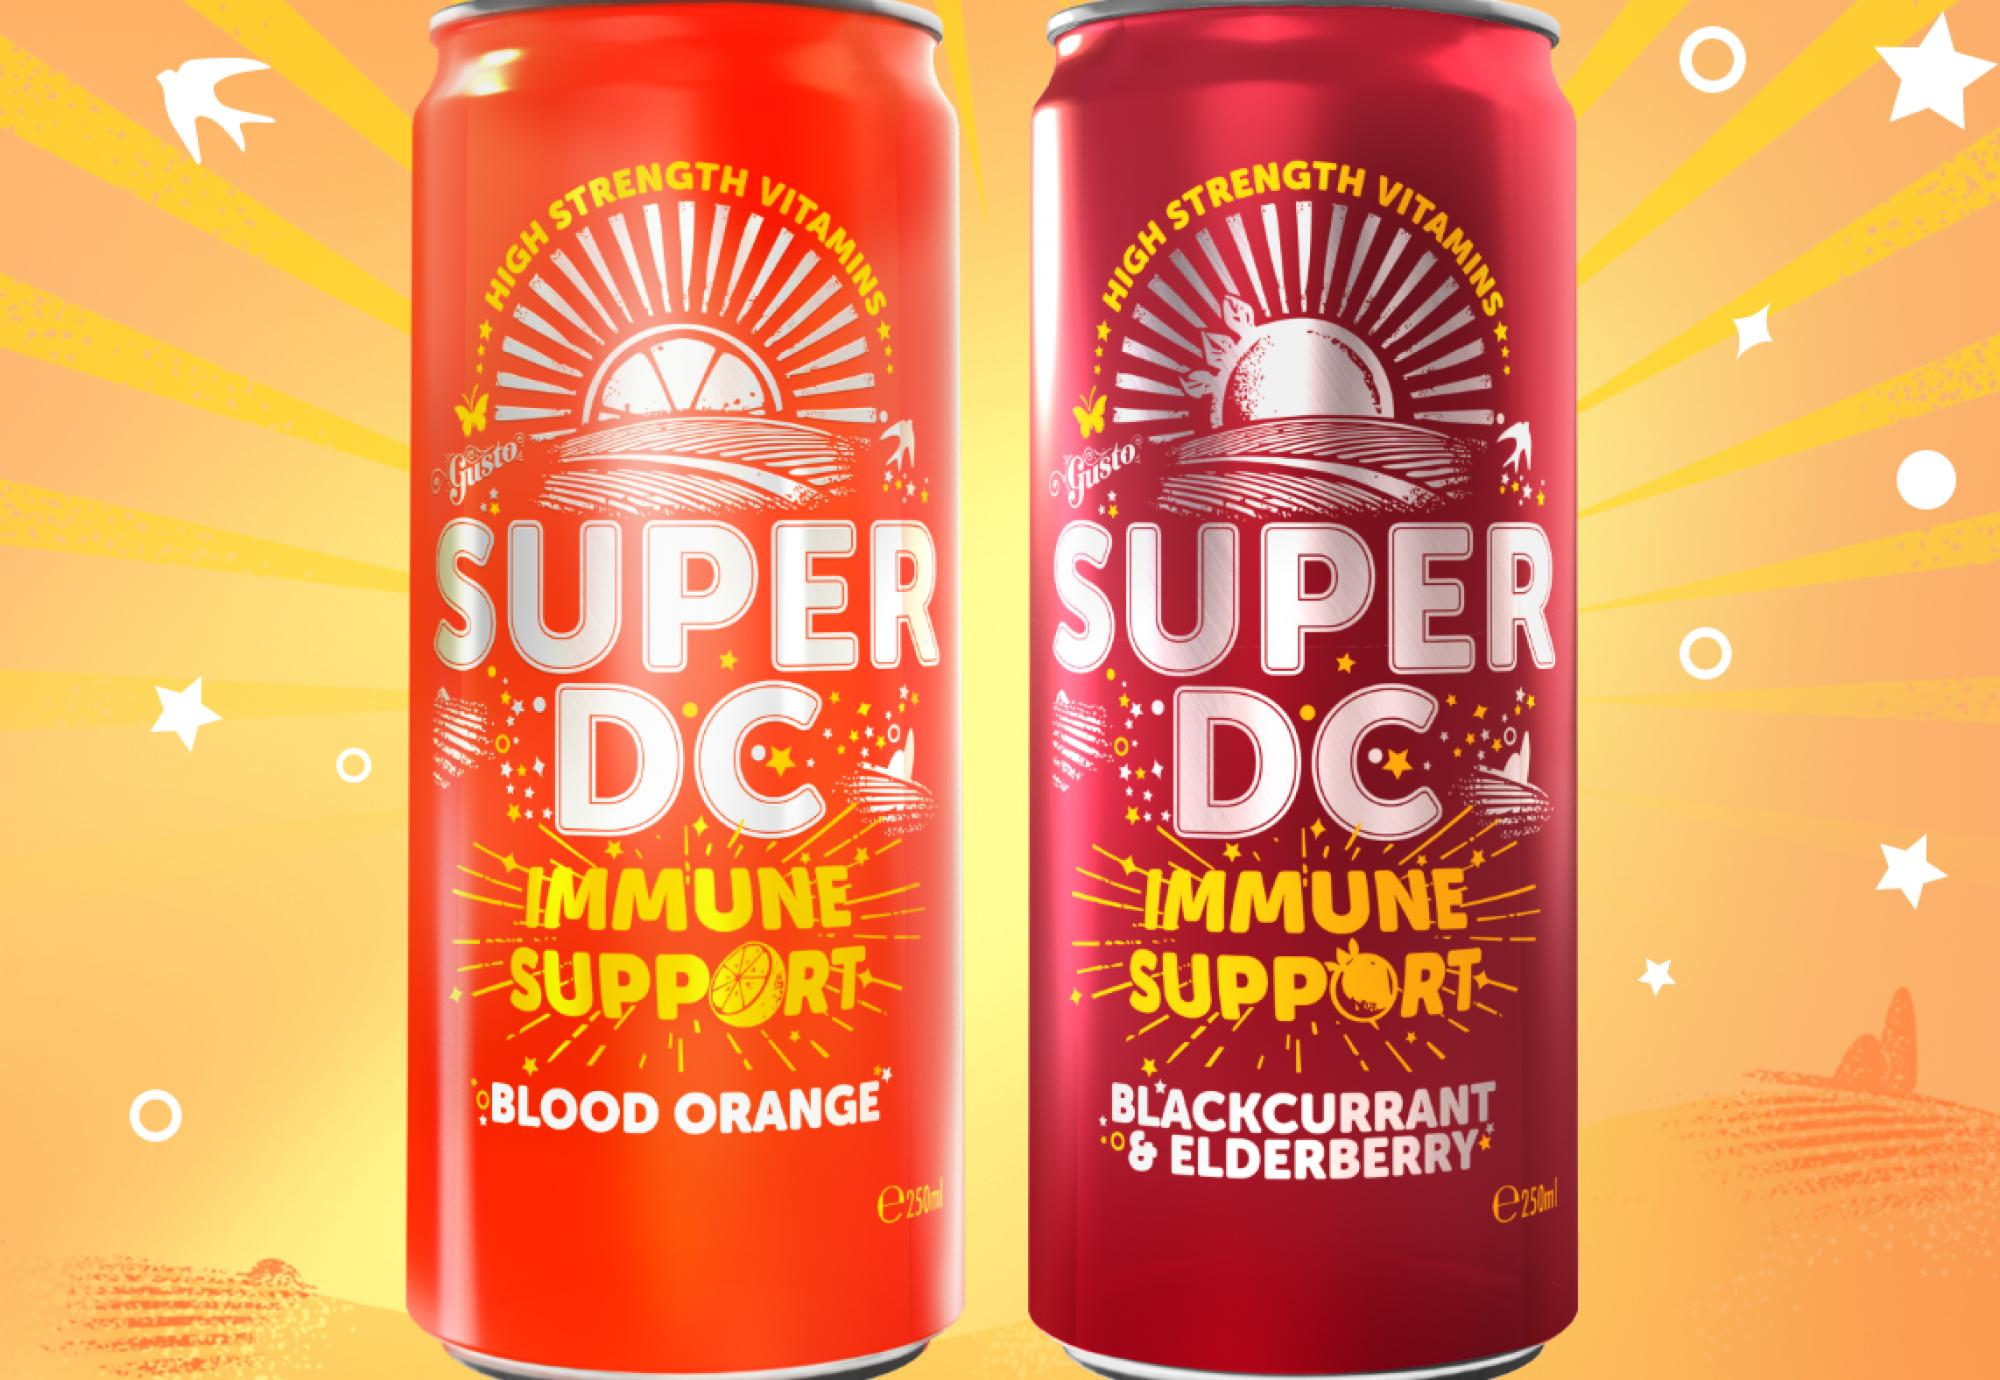 Super DC drink